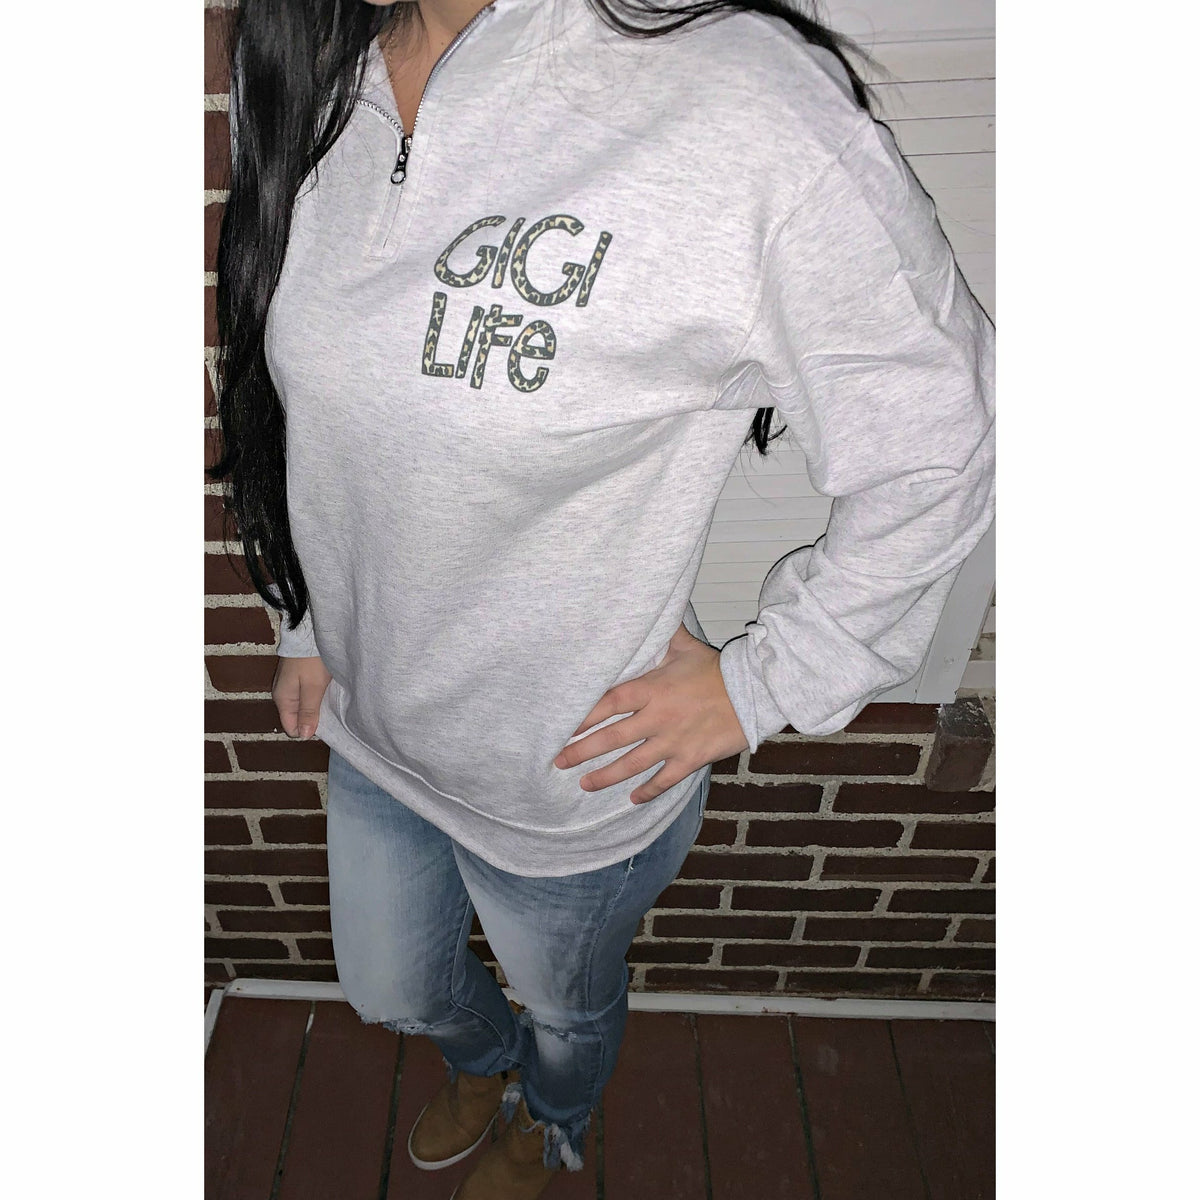 Zip Pullover (Mom, Aunt, Gigi or Custom)